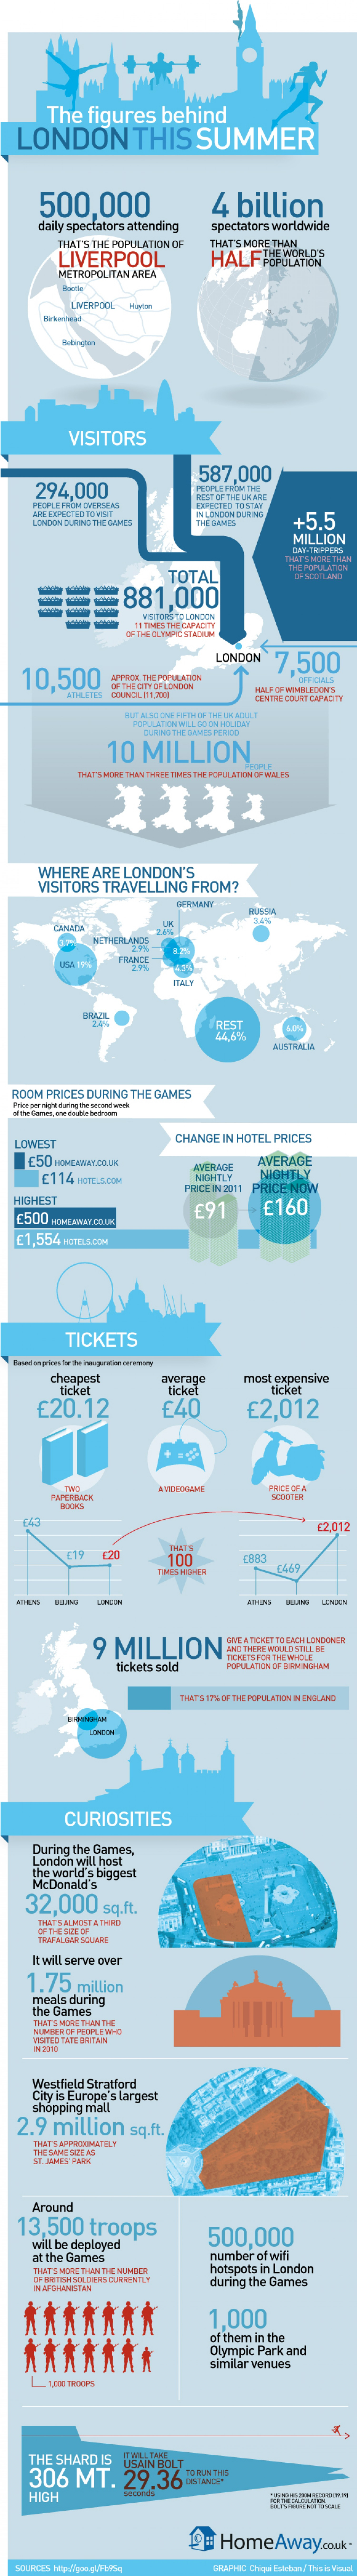 15. London 2012 info graphic